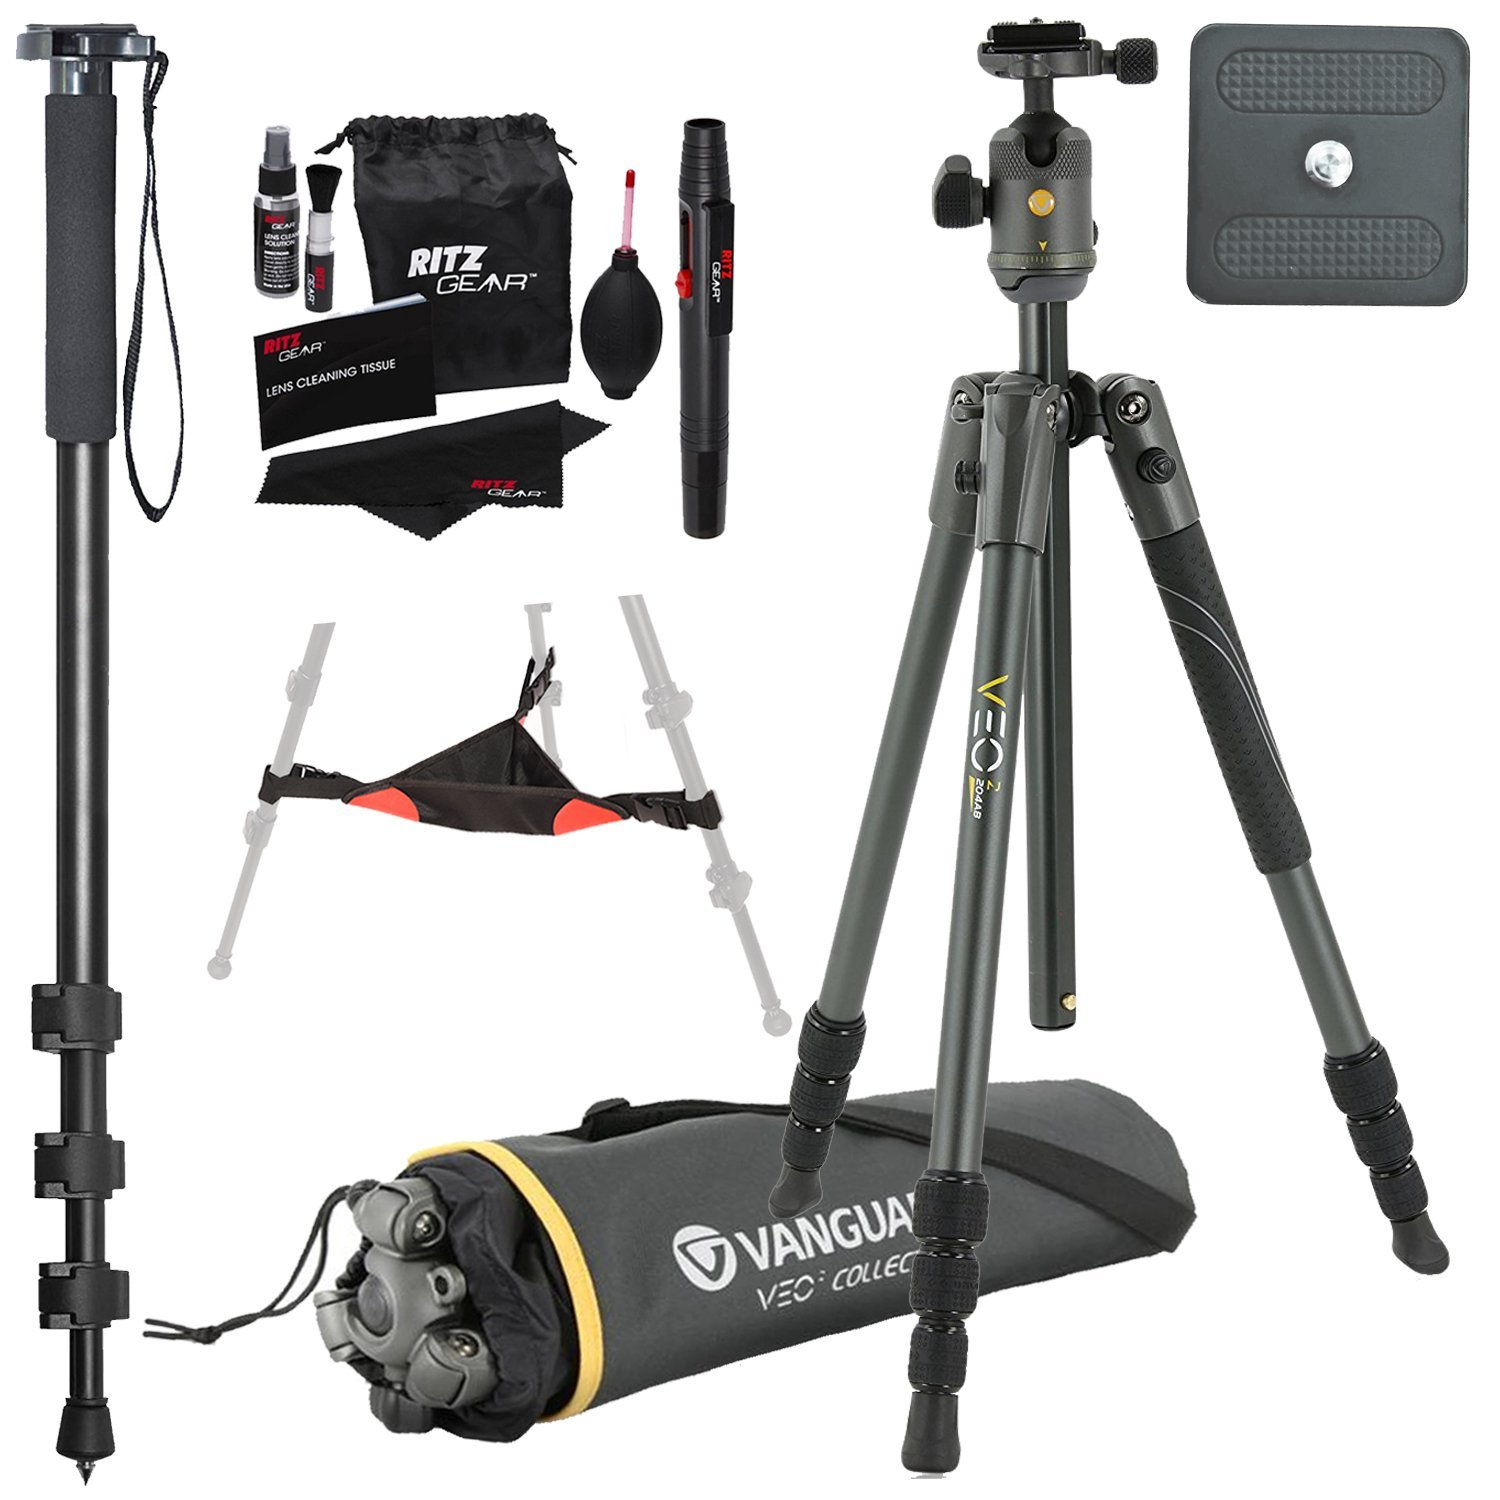 Vanguard VEO 2 204AB Black Aluminum Tripod with VEO 2 BH-45 Ball Head, Ritz Gear Tripod Stone Bag, 72-Inch Monopod with Quick Release and Ritz Gear Cleaning Kit